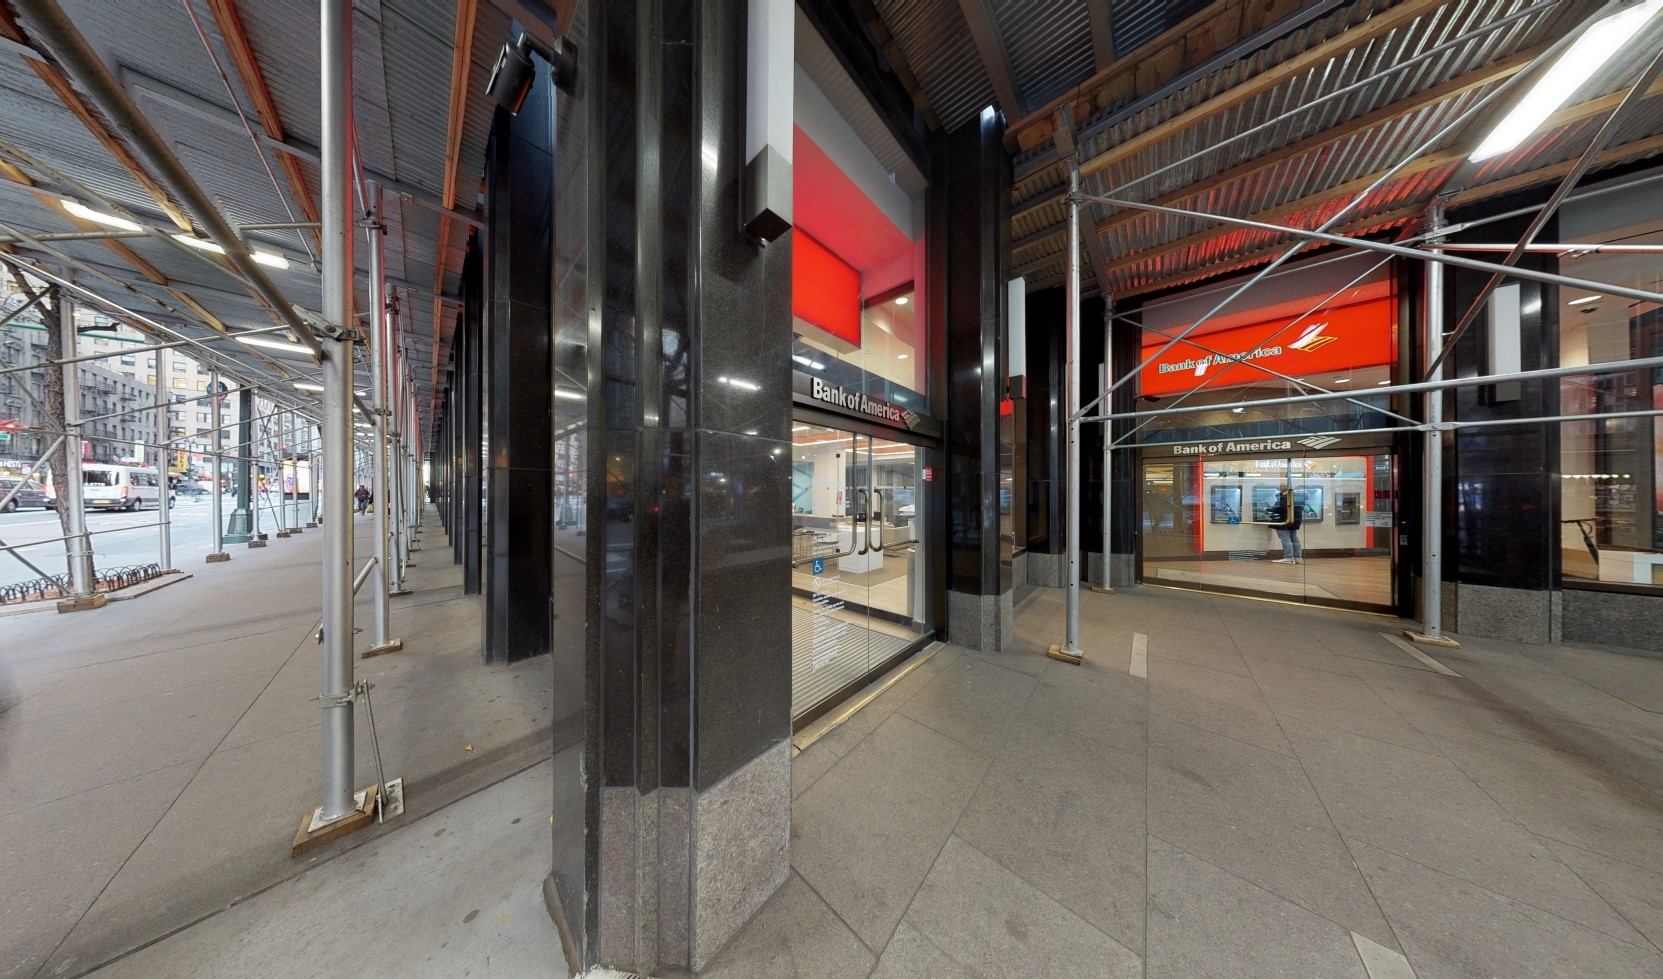 Bank of America financial center with walk-up ATM | 675 3rd Ave, New York, NY 10017